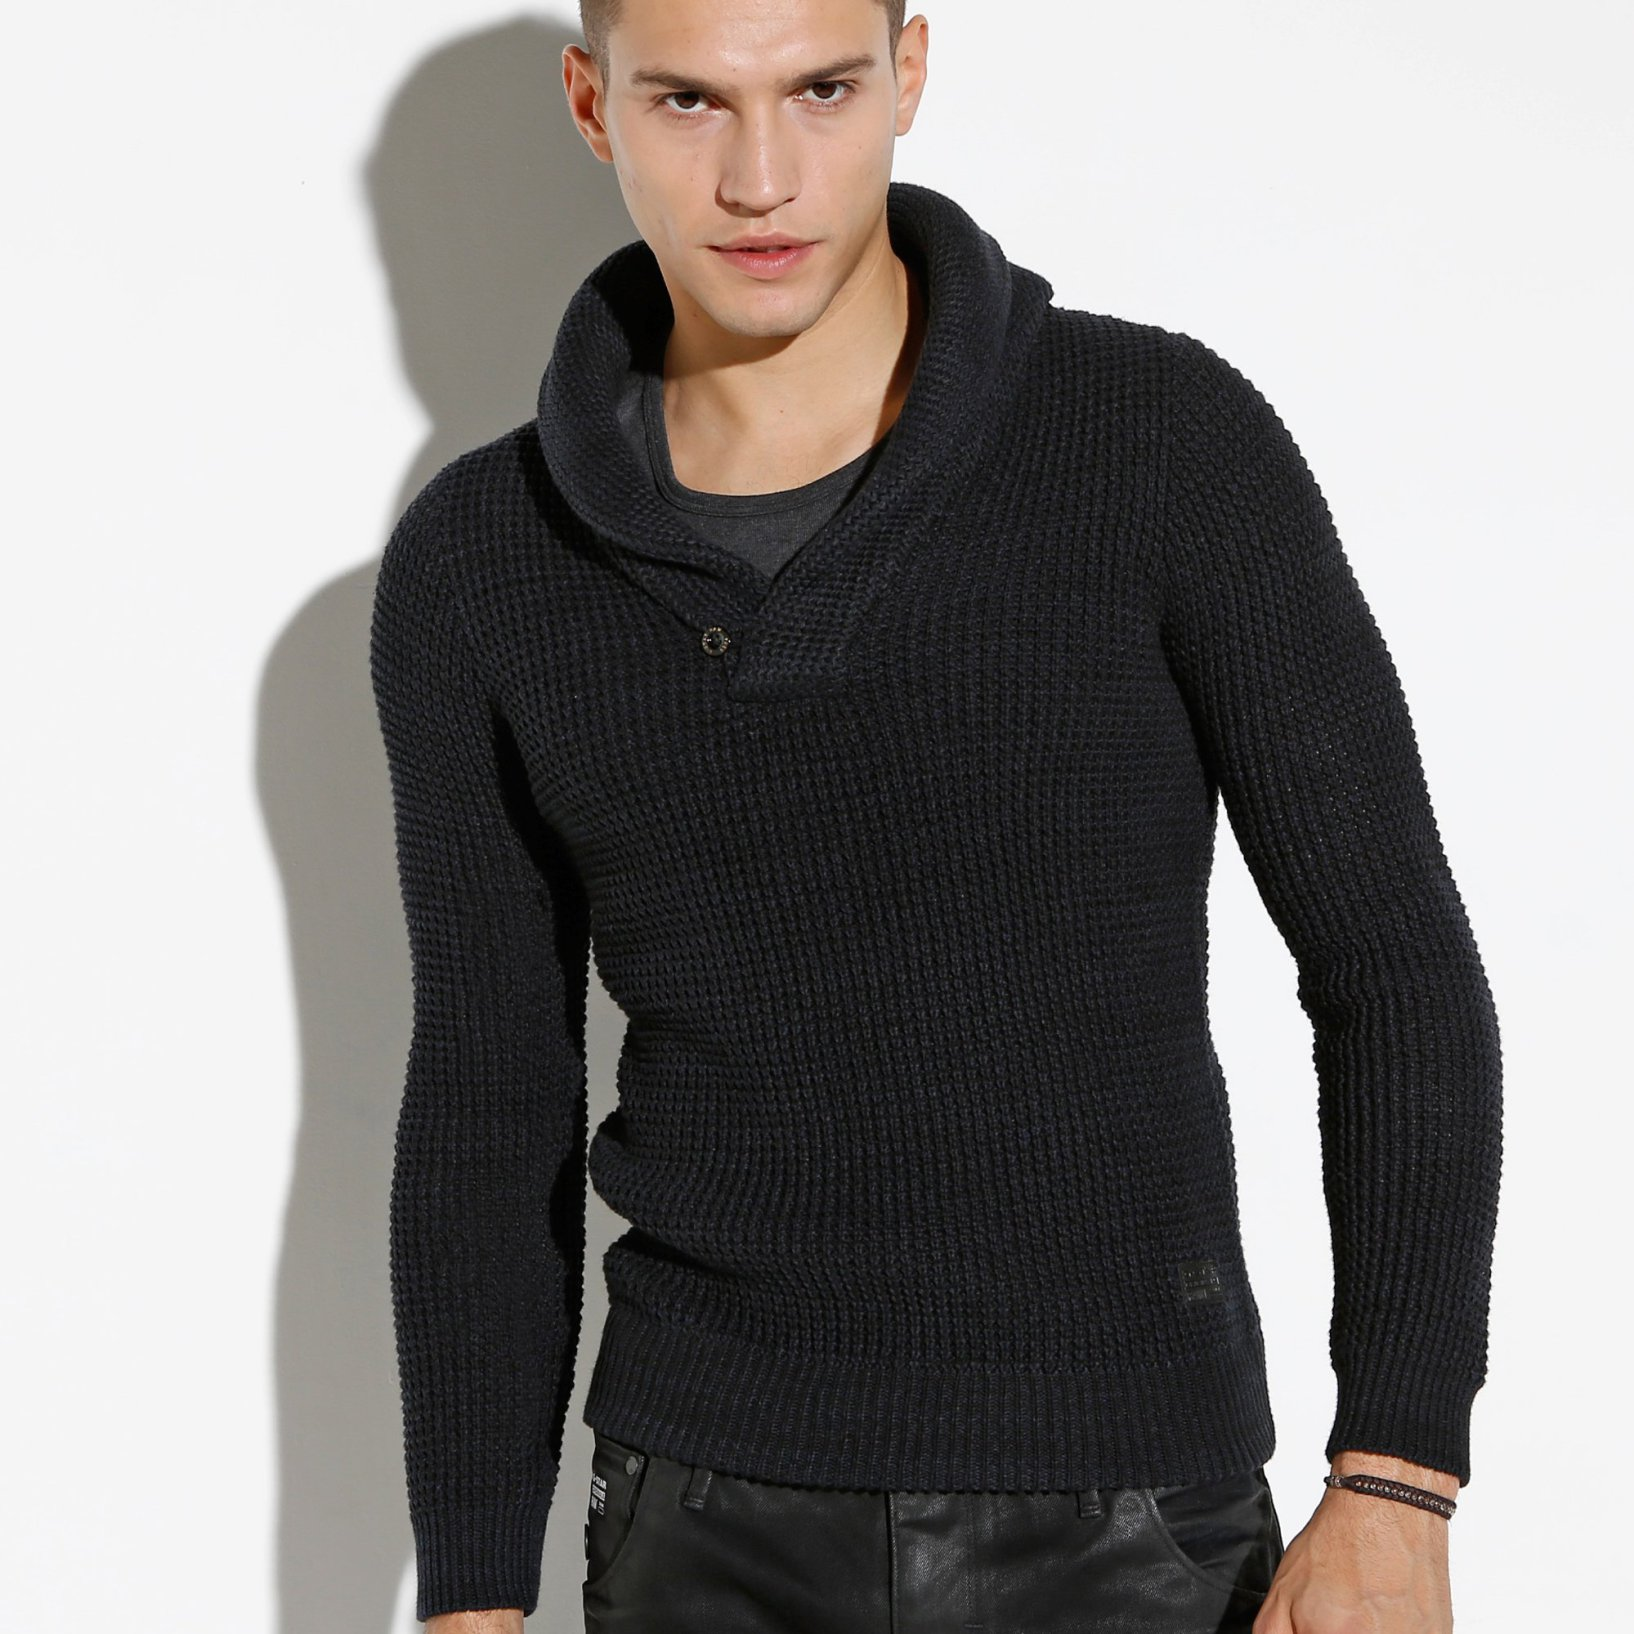 modele tricot pull homme col chale